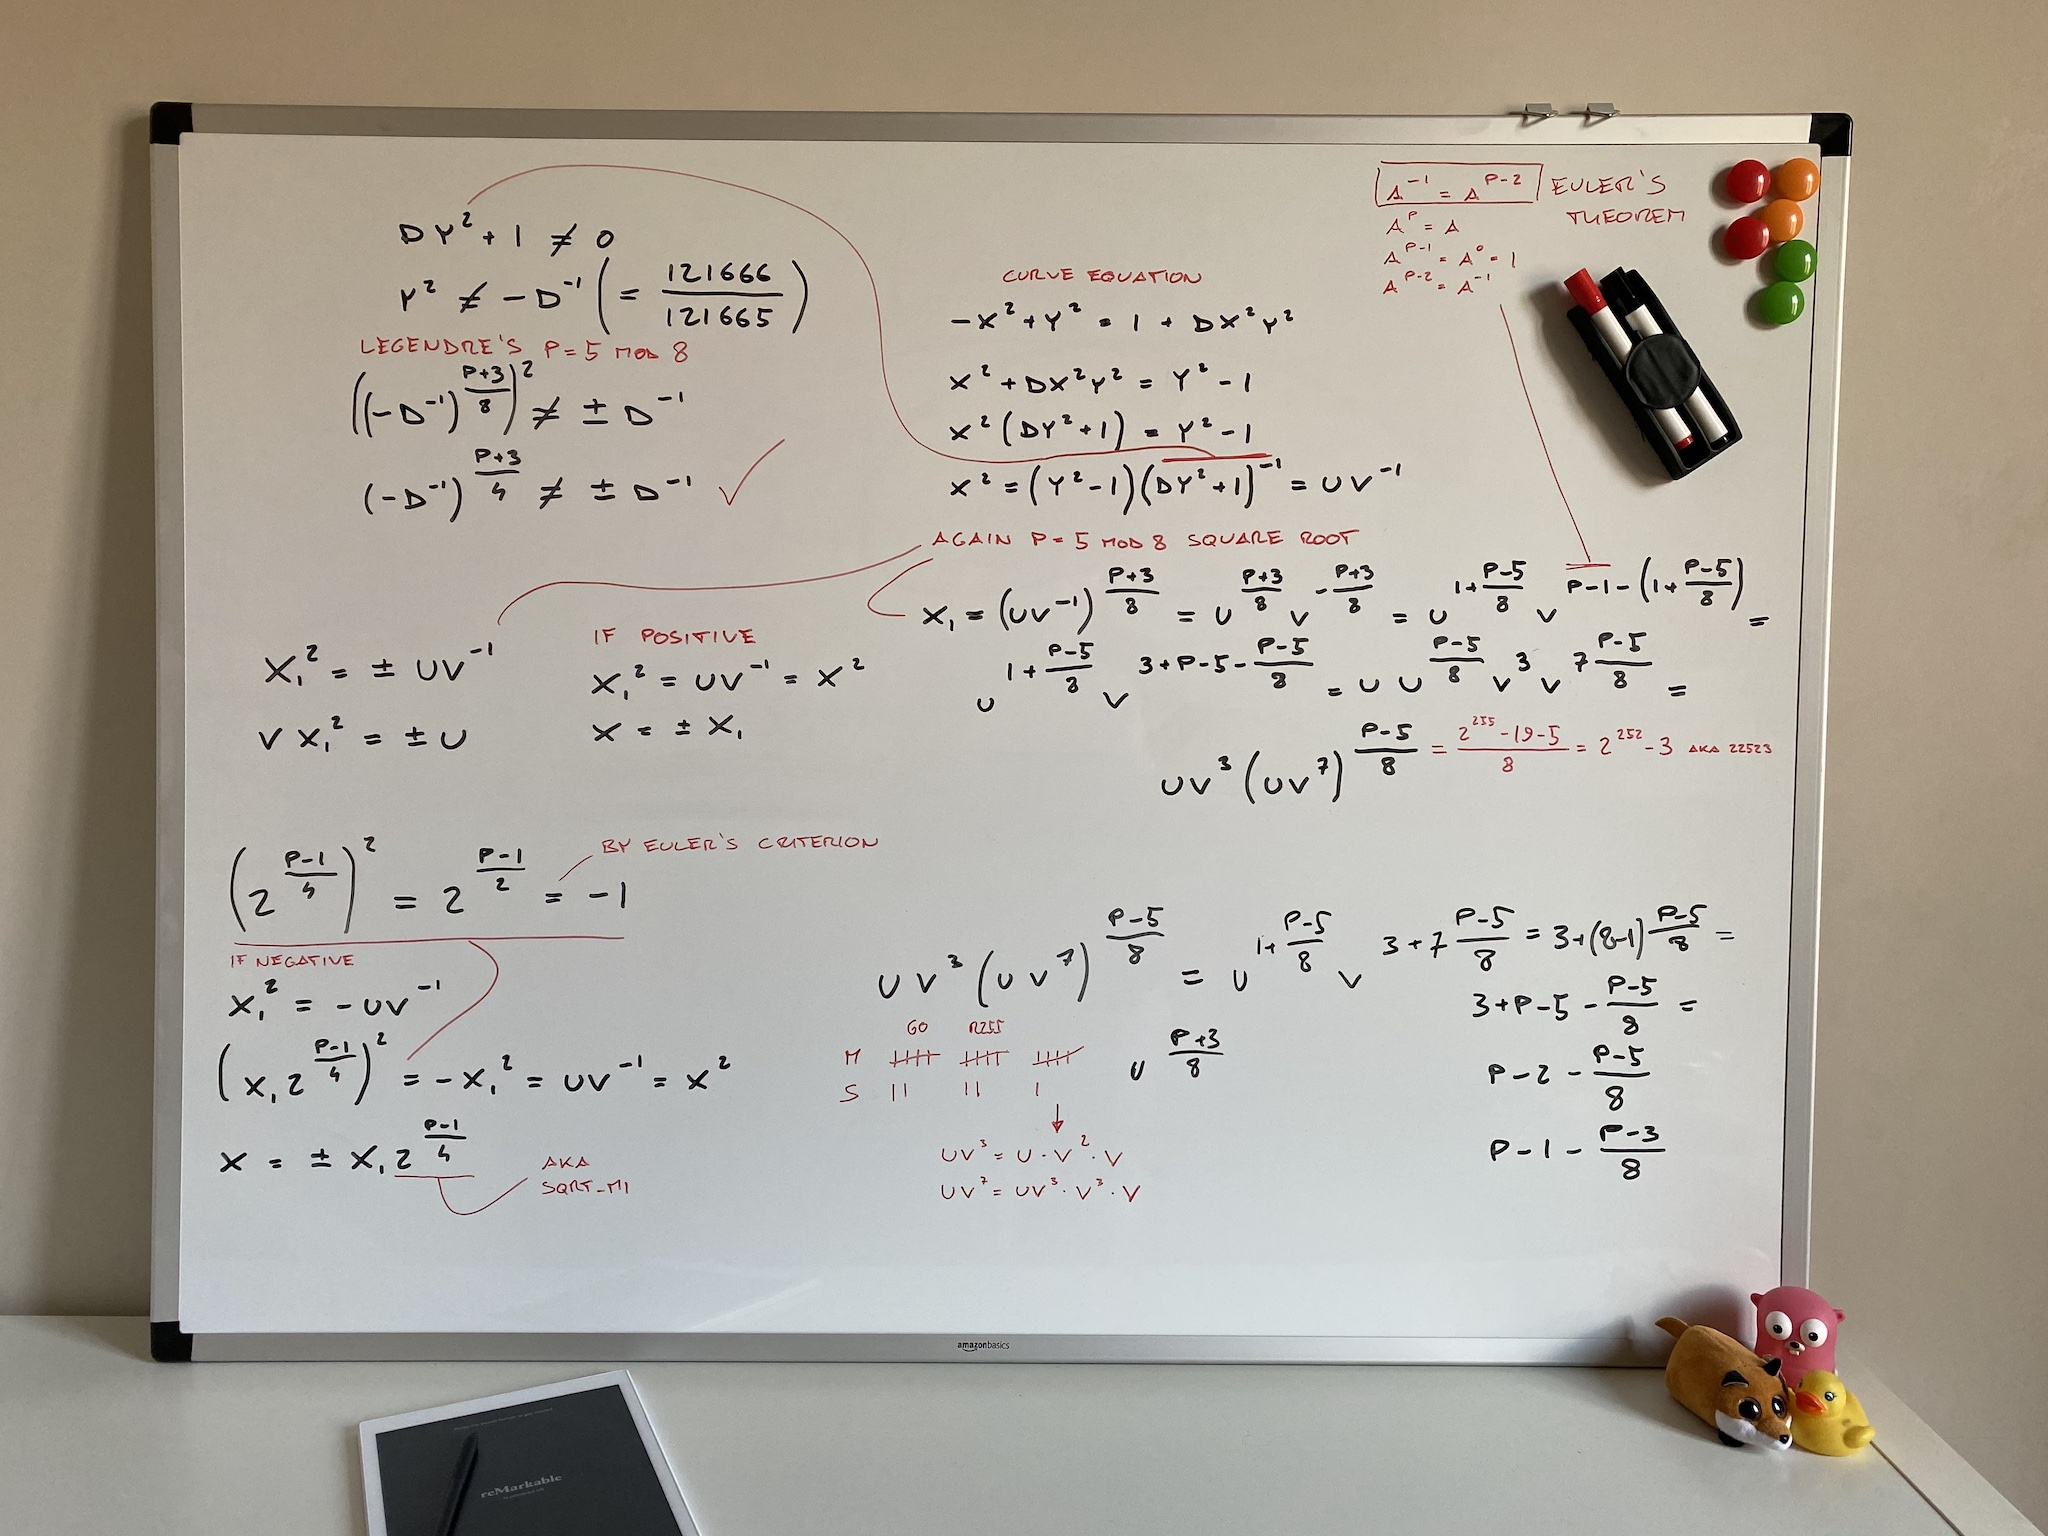 My whiteboard where I worked out the formulas in this issue